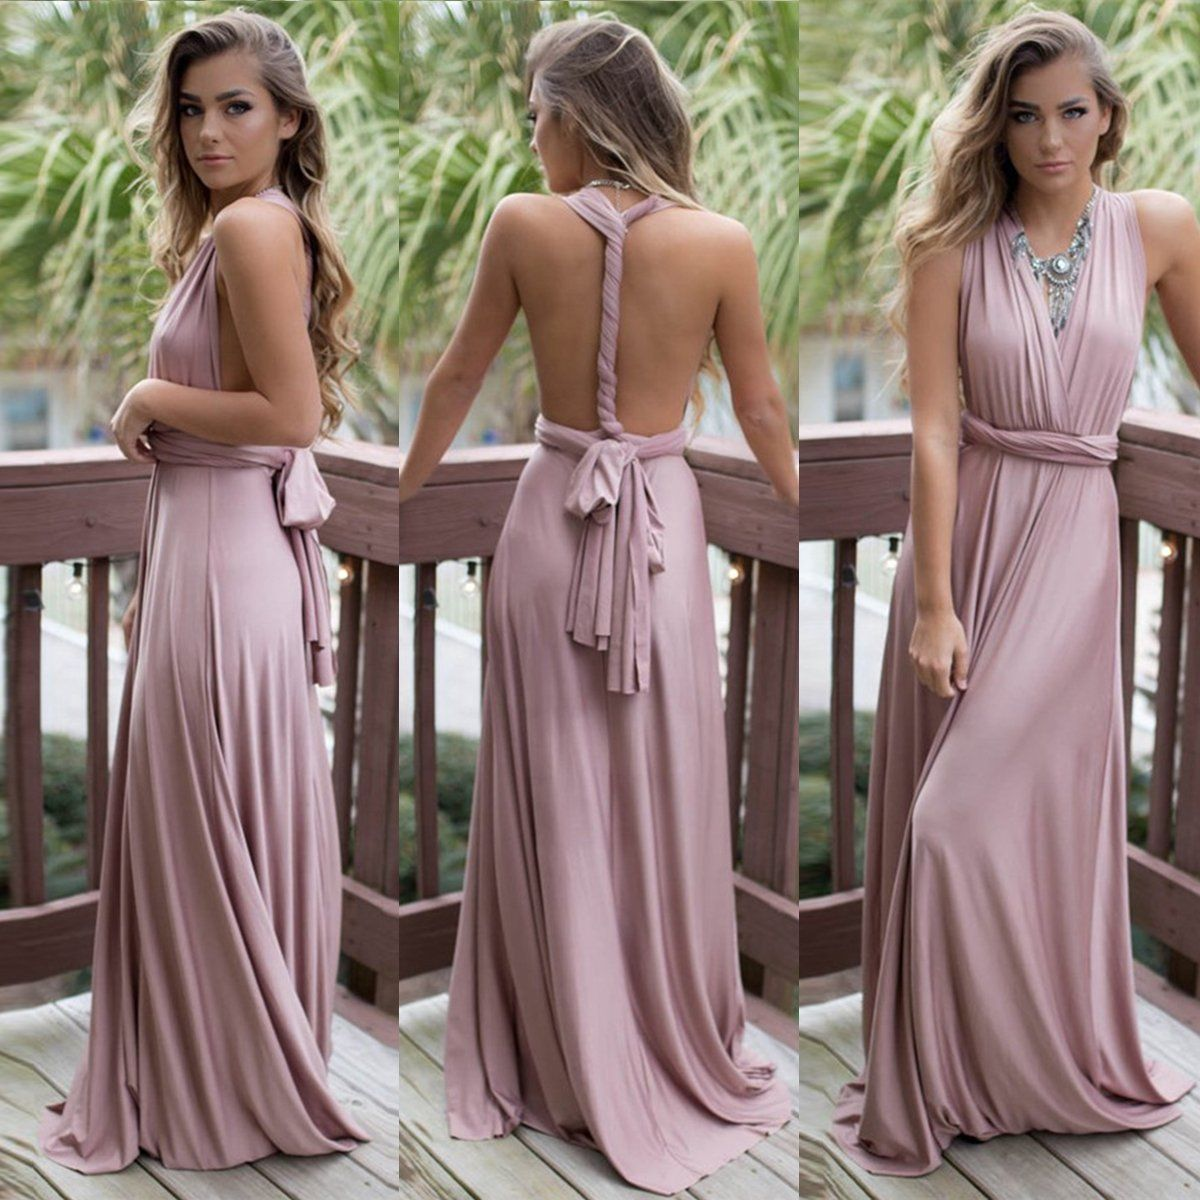 Women Summer Boho Bridesmaid Dress Evening Tail Party Beach Dresses Sundress